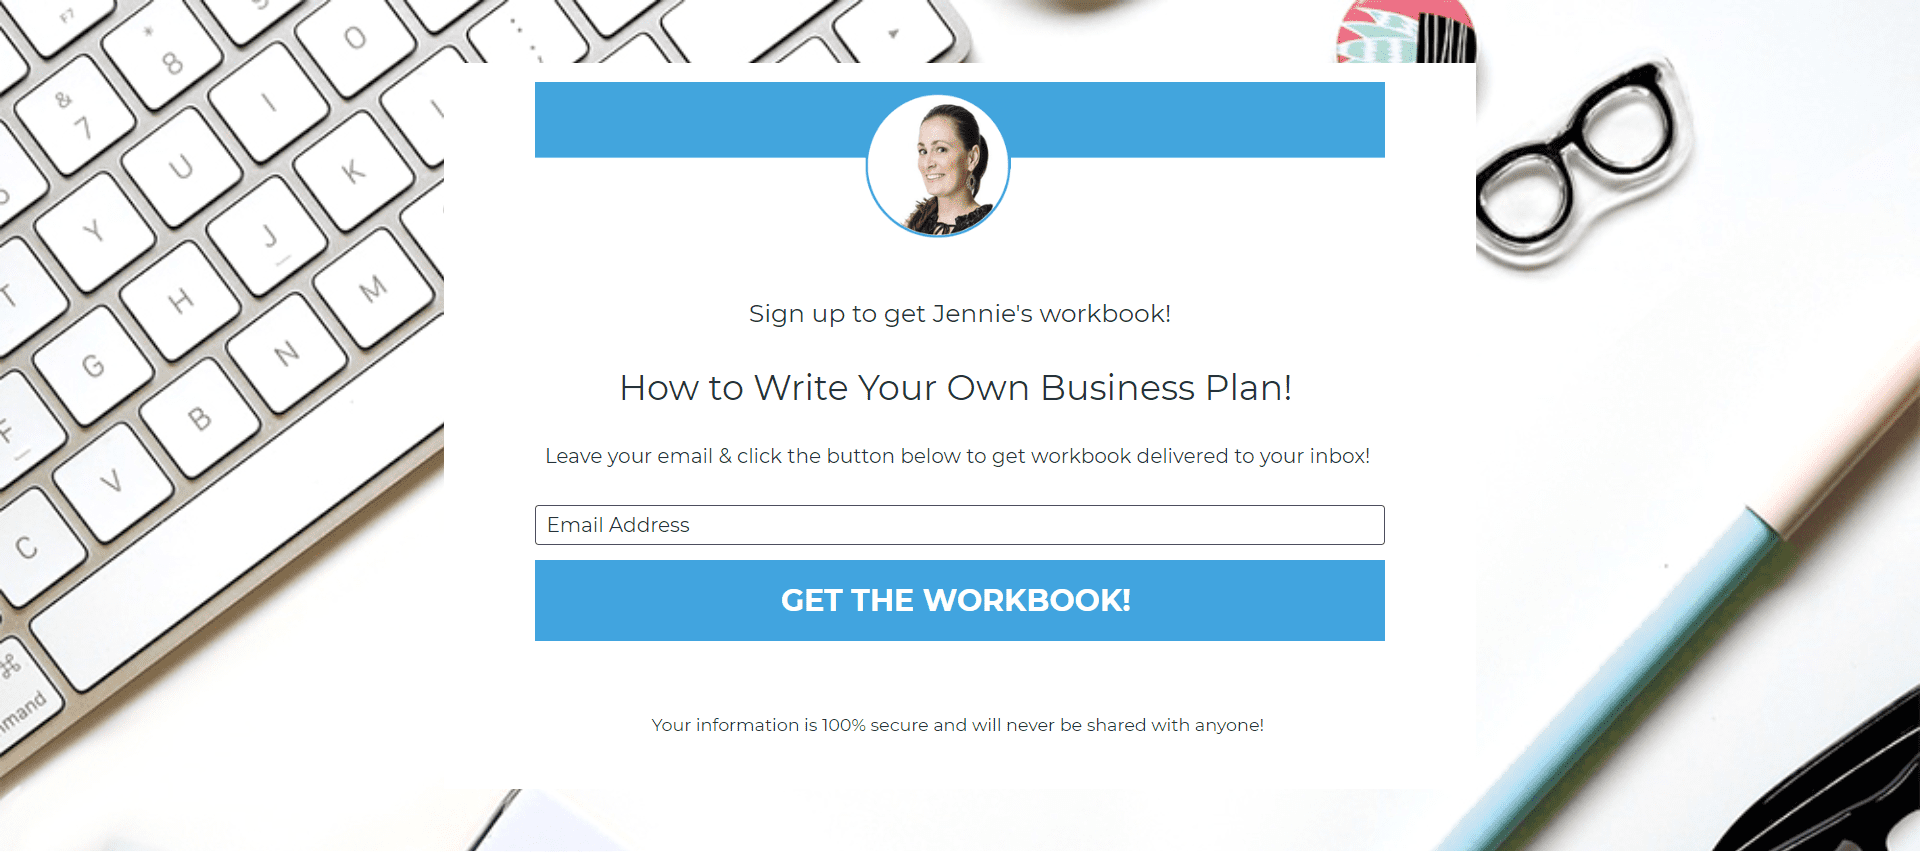 screencapture-jennielyonvirtualassistantservices-lpages-co-jlvas-free-business-planning-workbook-2018-11-18-16_24_12